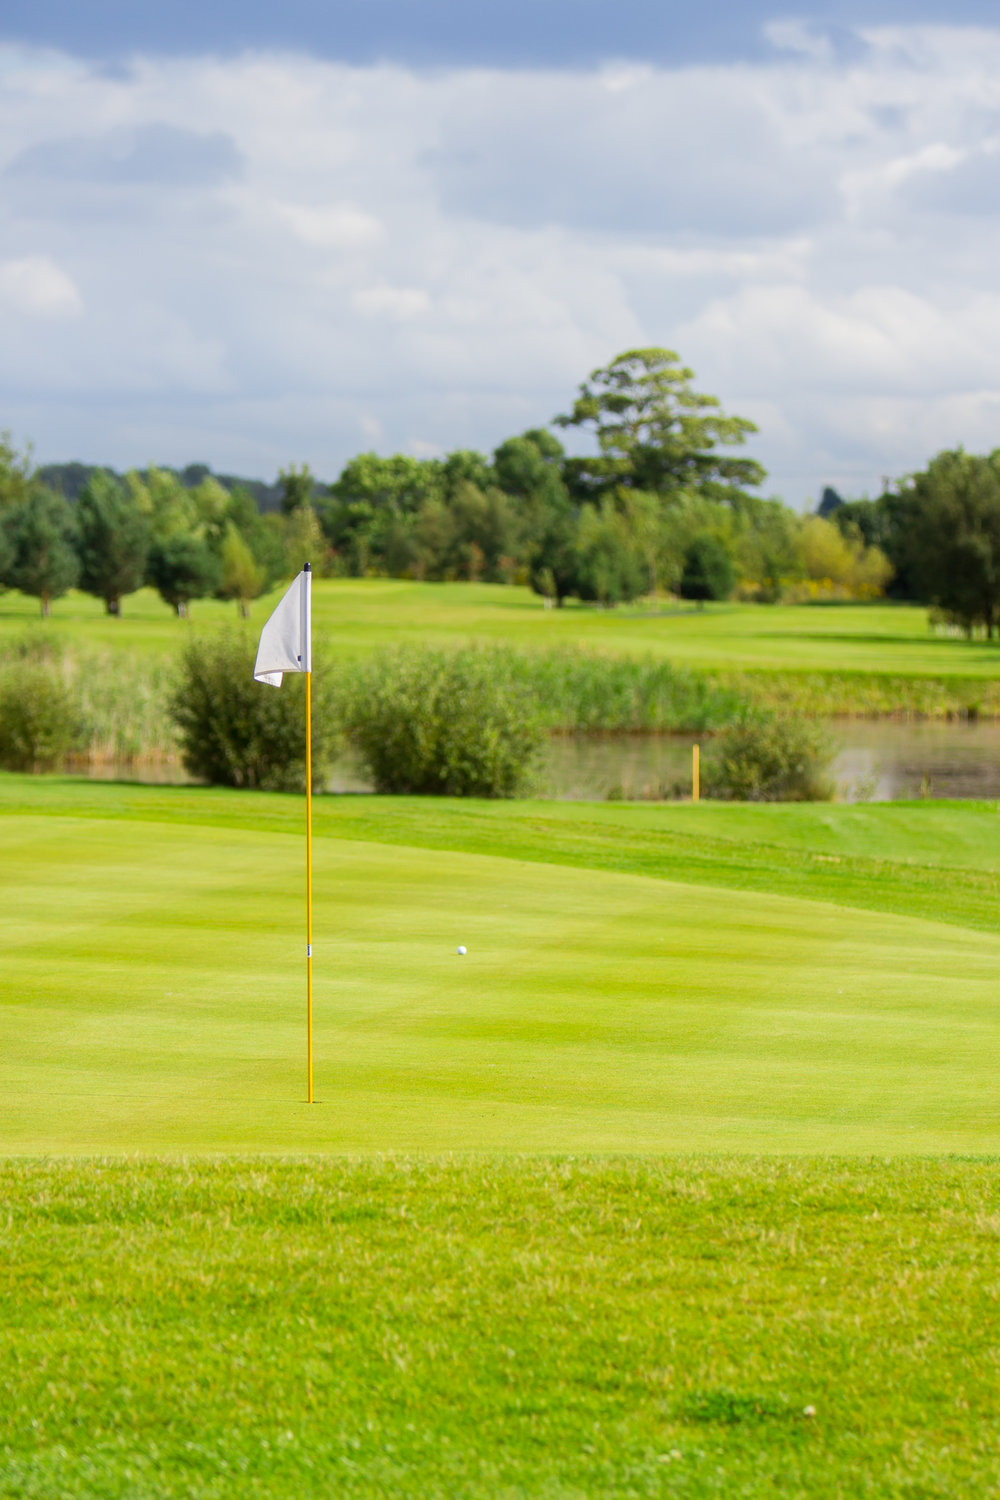 Discount on rounds of golf in hull, east yorkshire